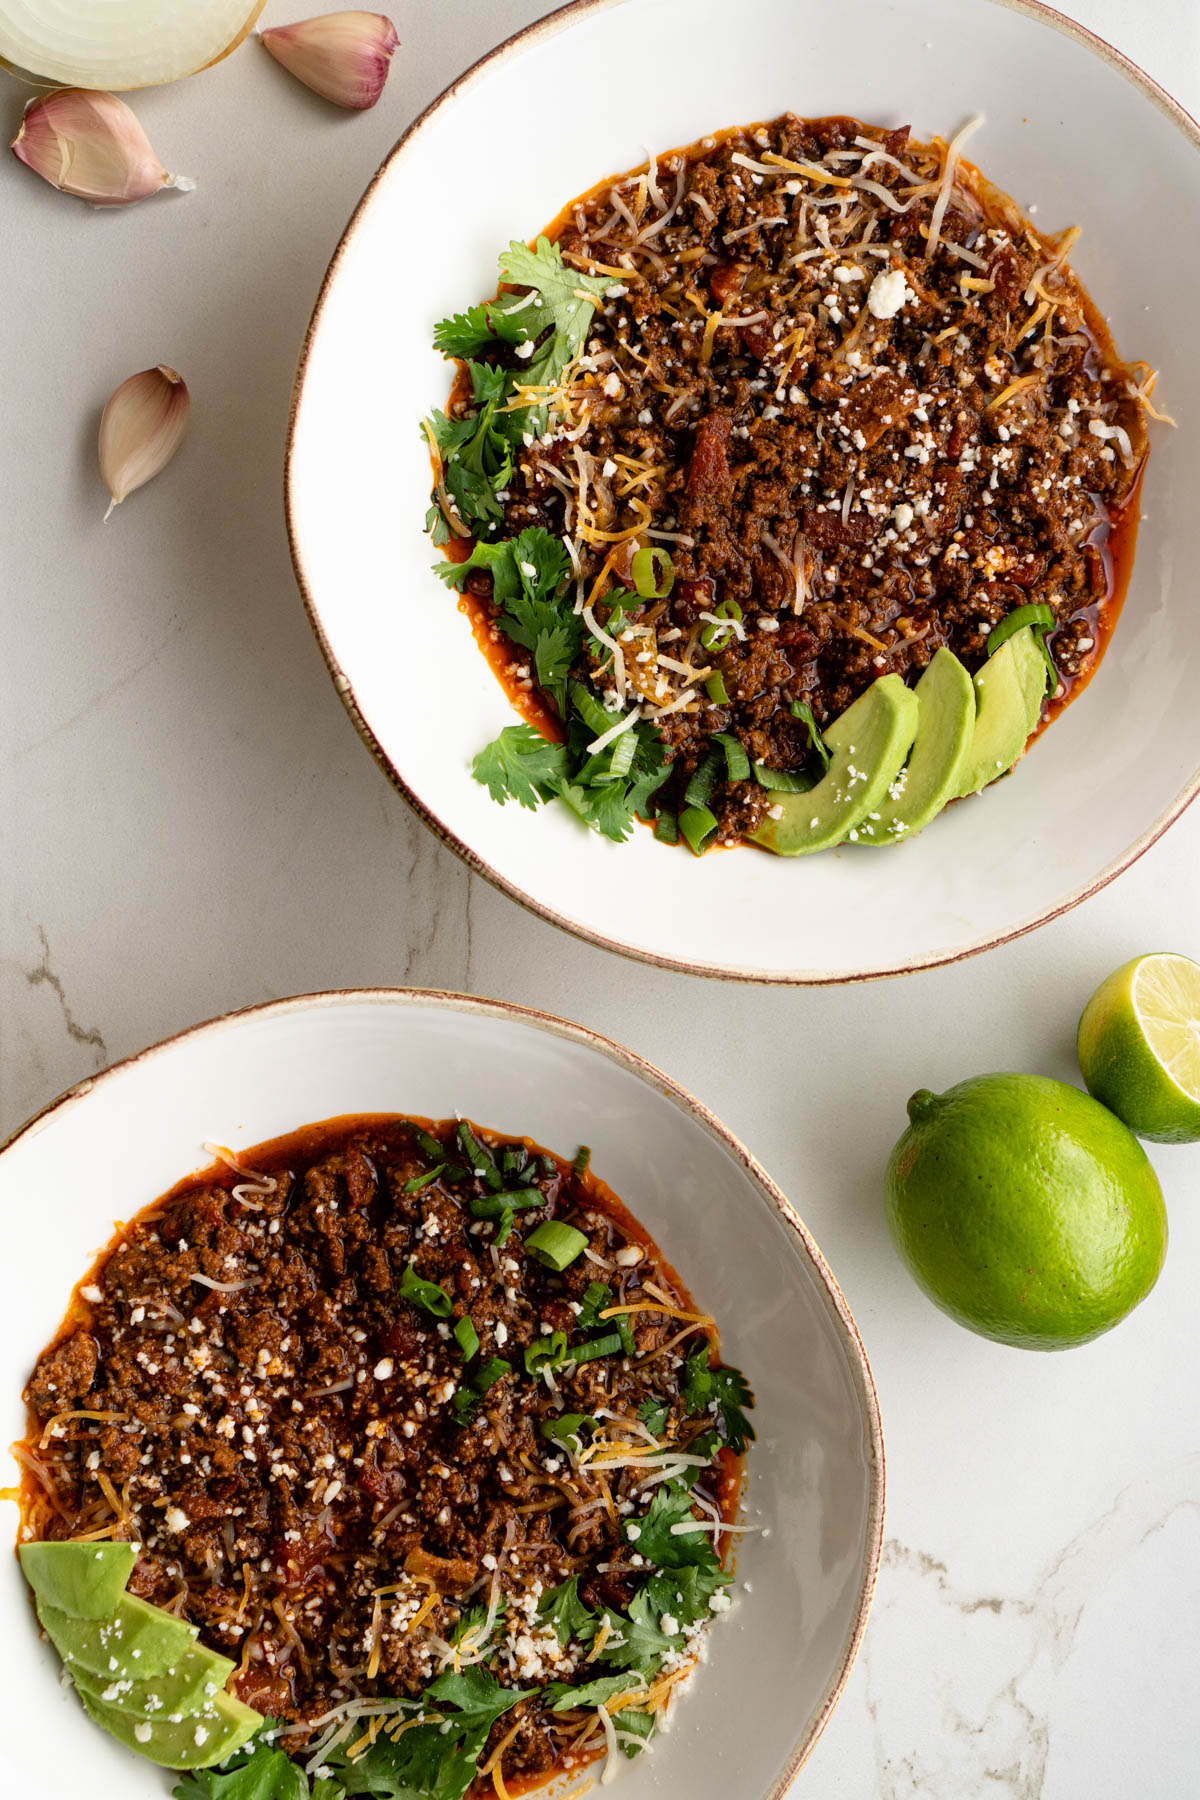 Two bowls of chili near garlic cloves and lime